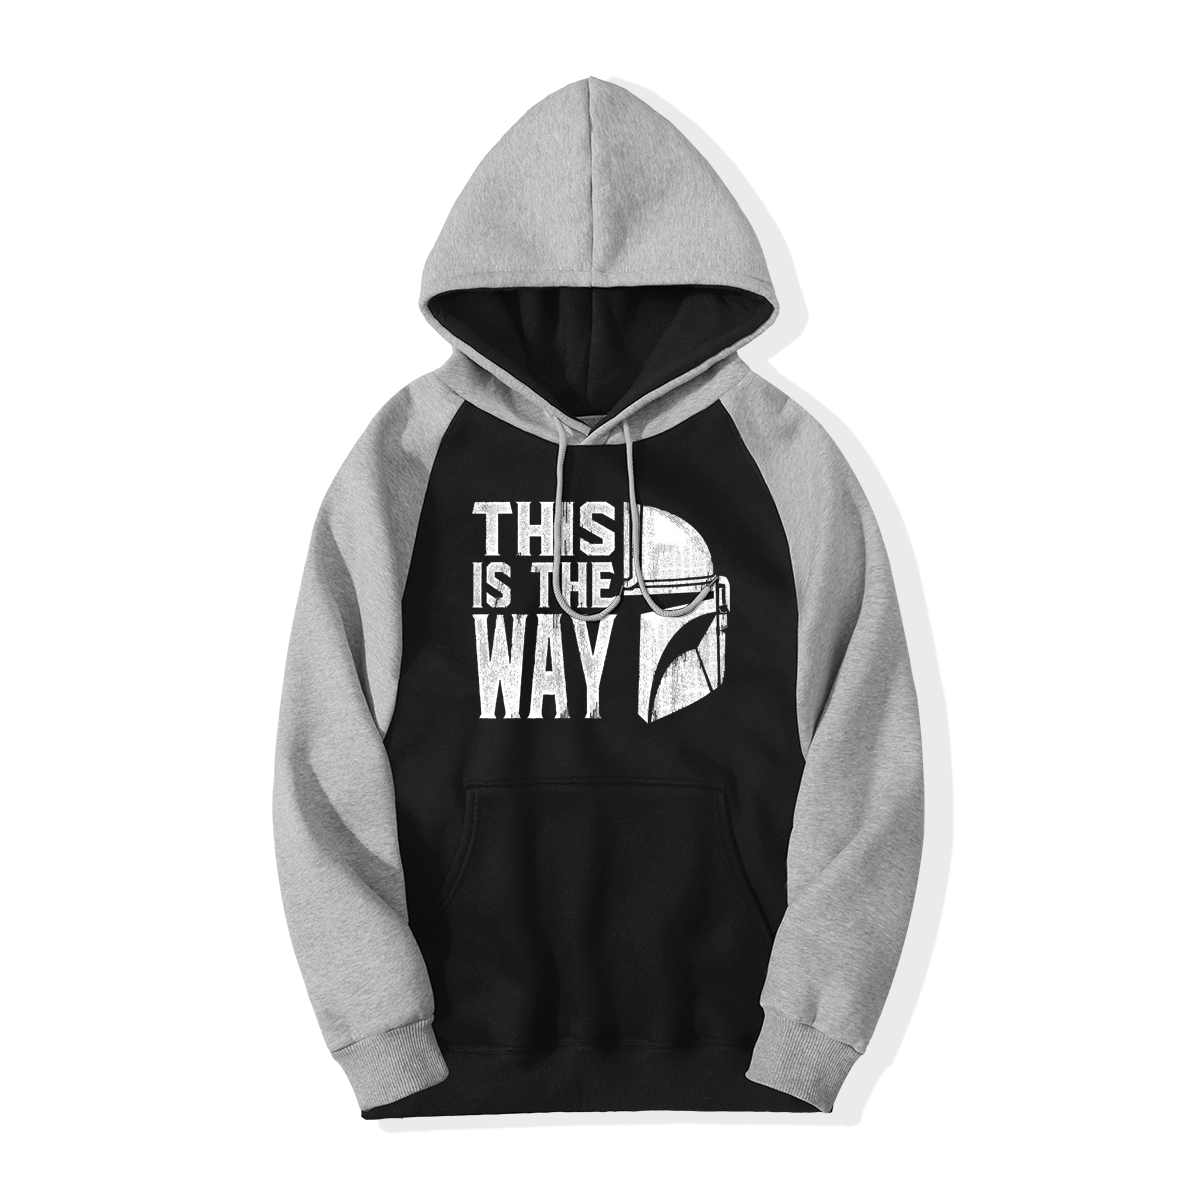 TV Show The Mandalorian Way Men Sweatshirts Hoodie 2019 Winter Star Wars This Is My Way Hooded Fleece Raglan Hoodie Pullover